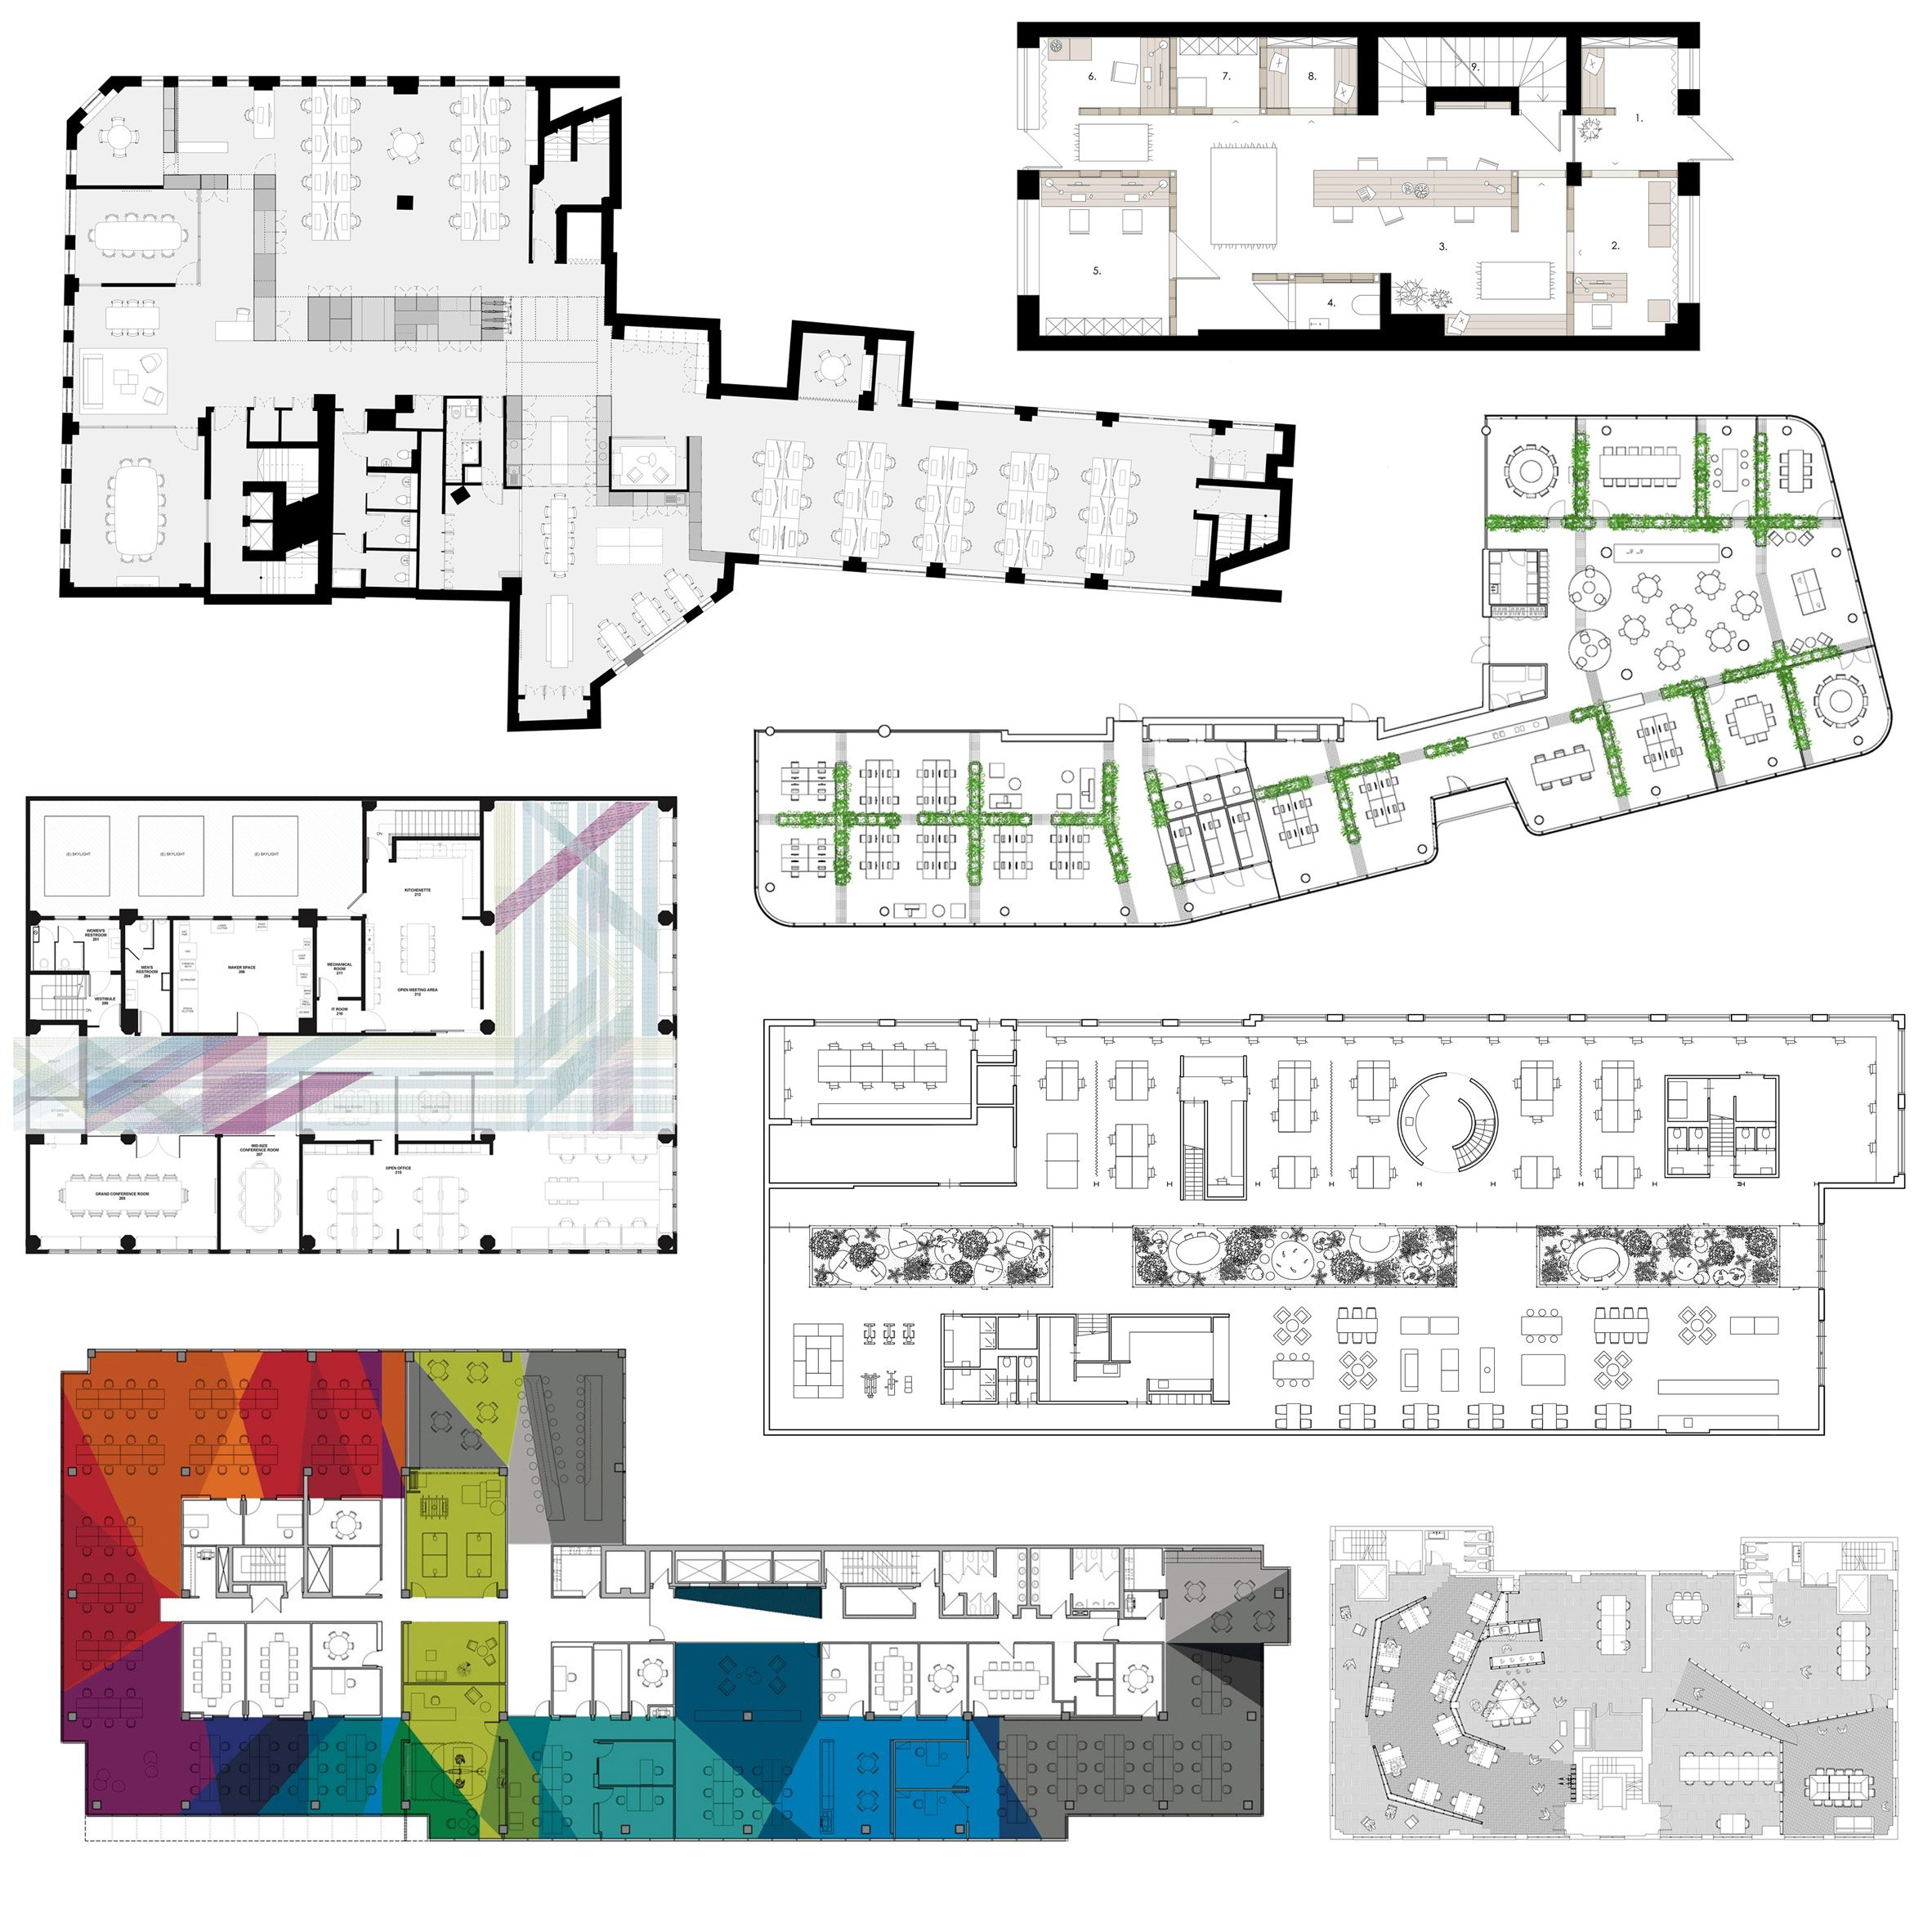 10 Office Floor Plans Divided Up In Interesting Ways